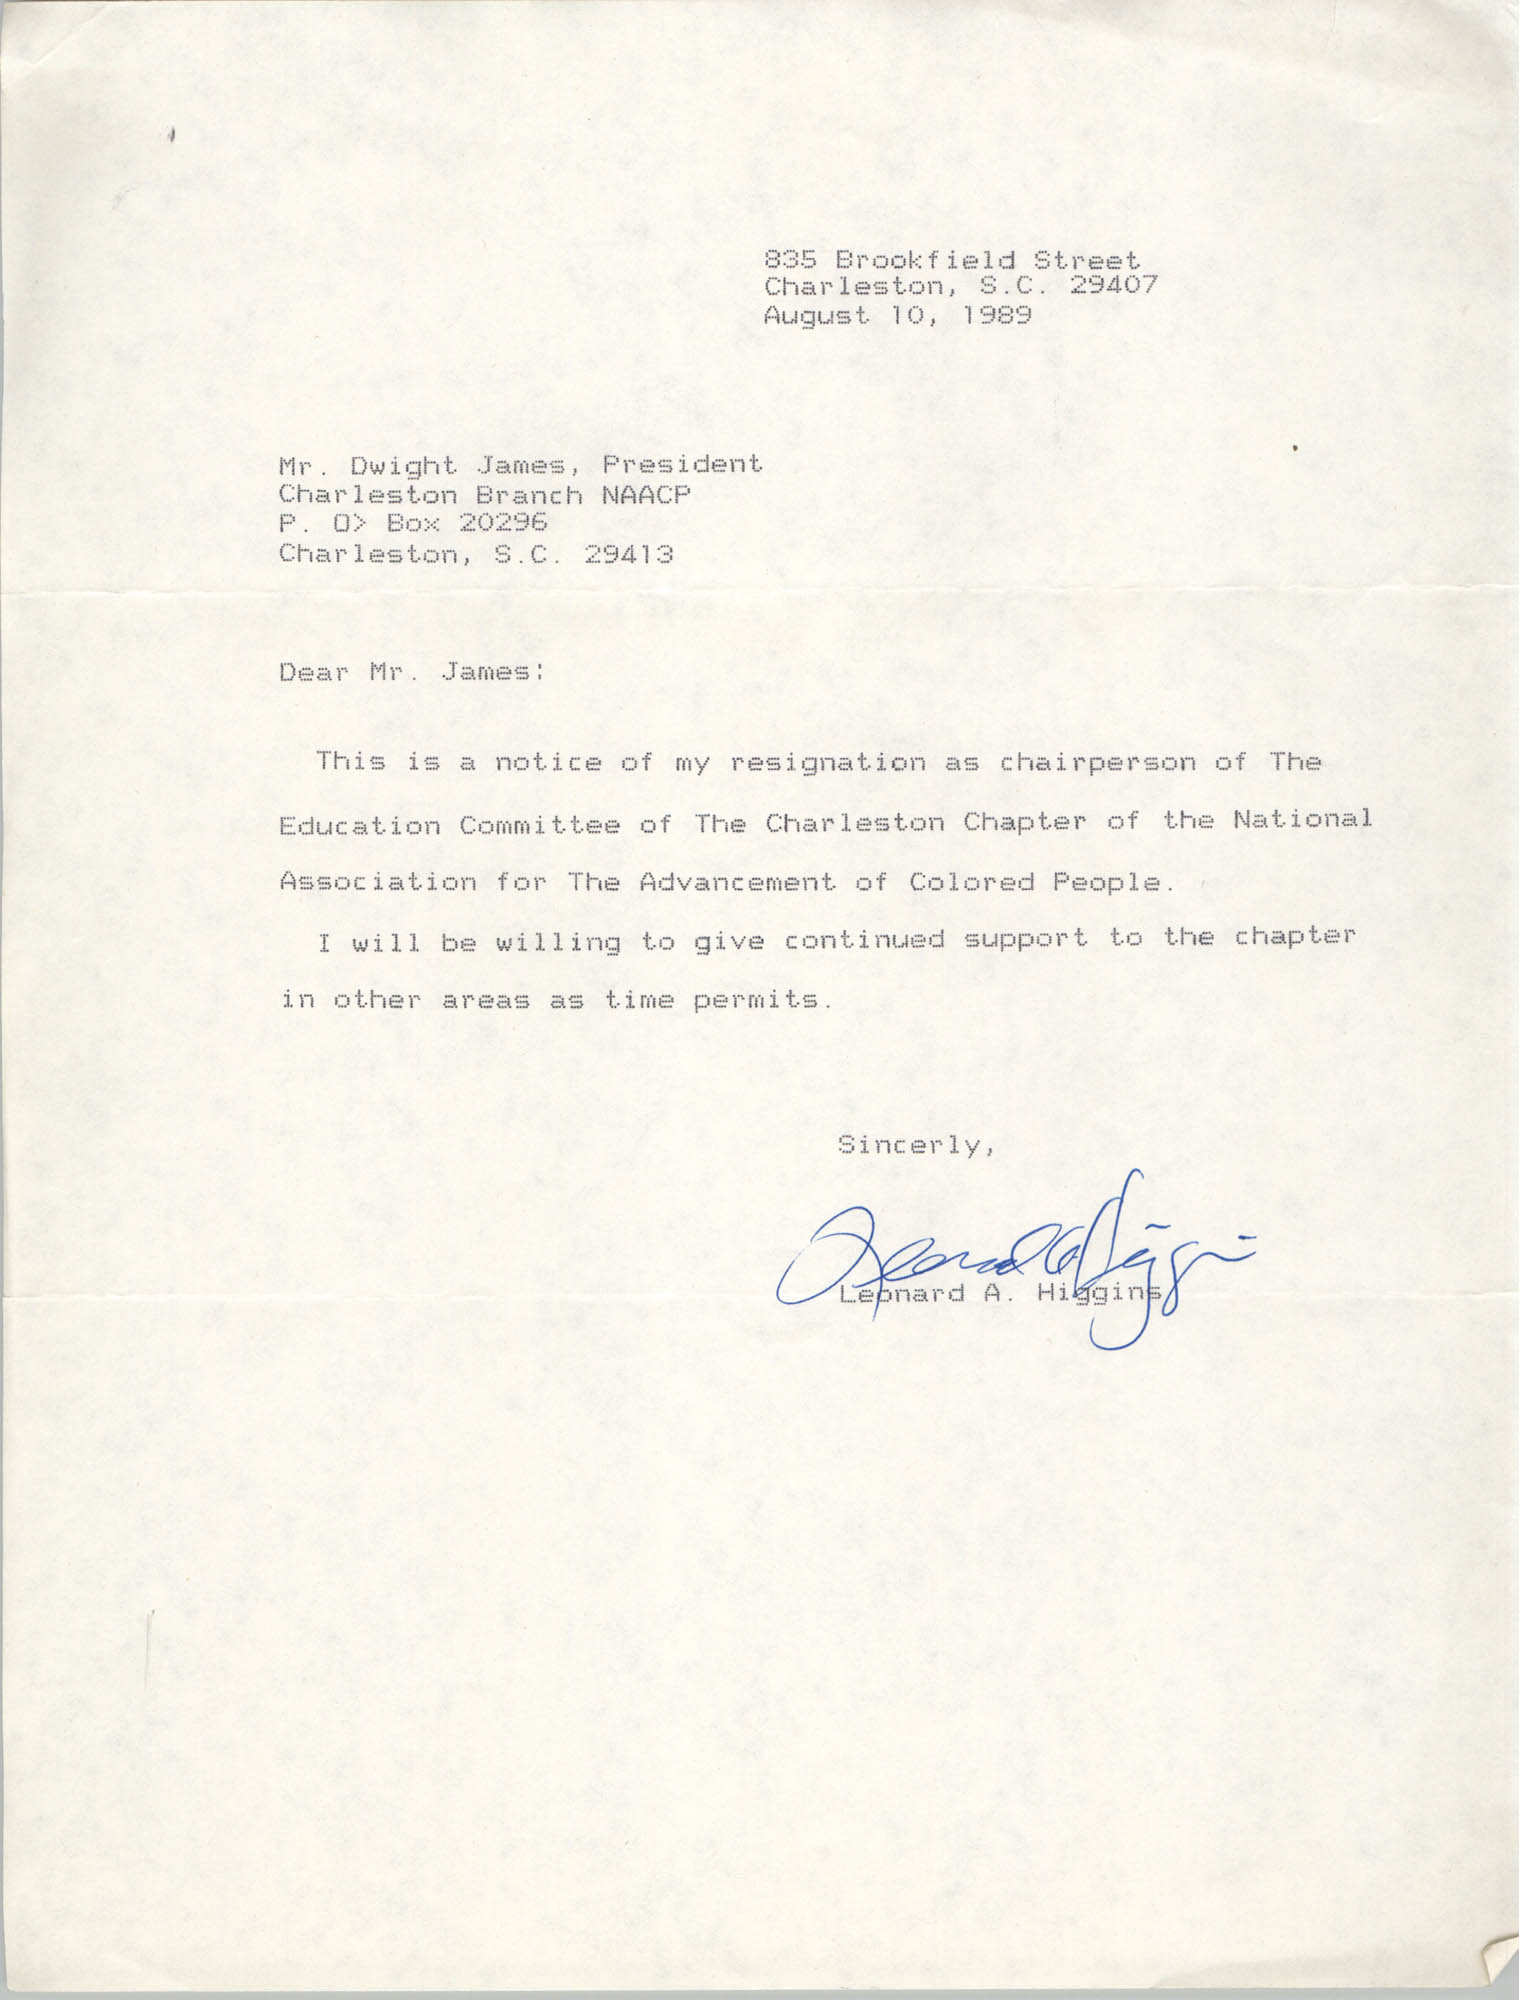 Letter from Leonard A. Higgins to Dwight James, August 10, 1989